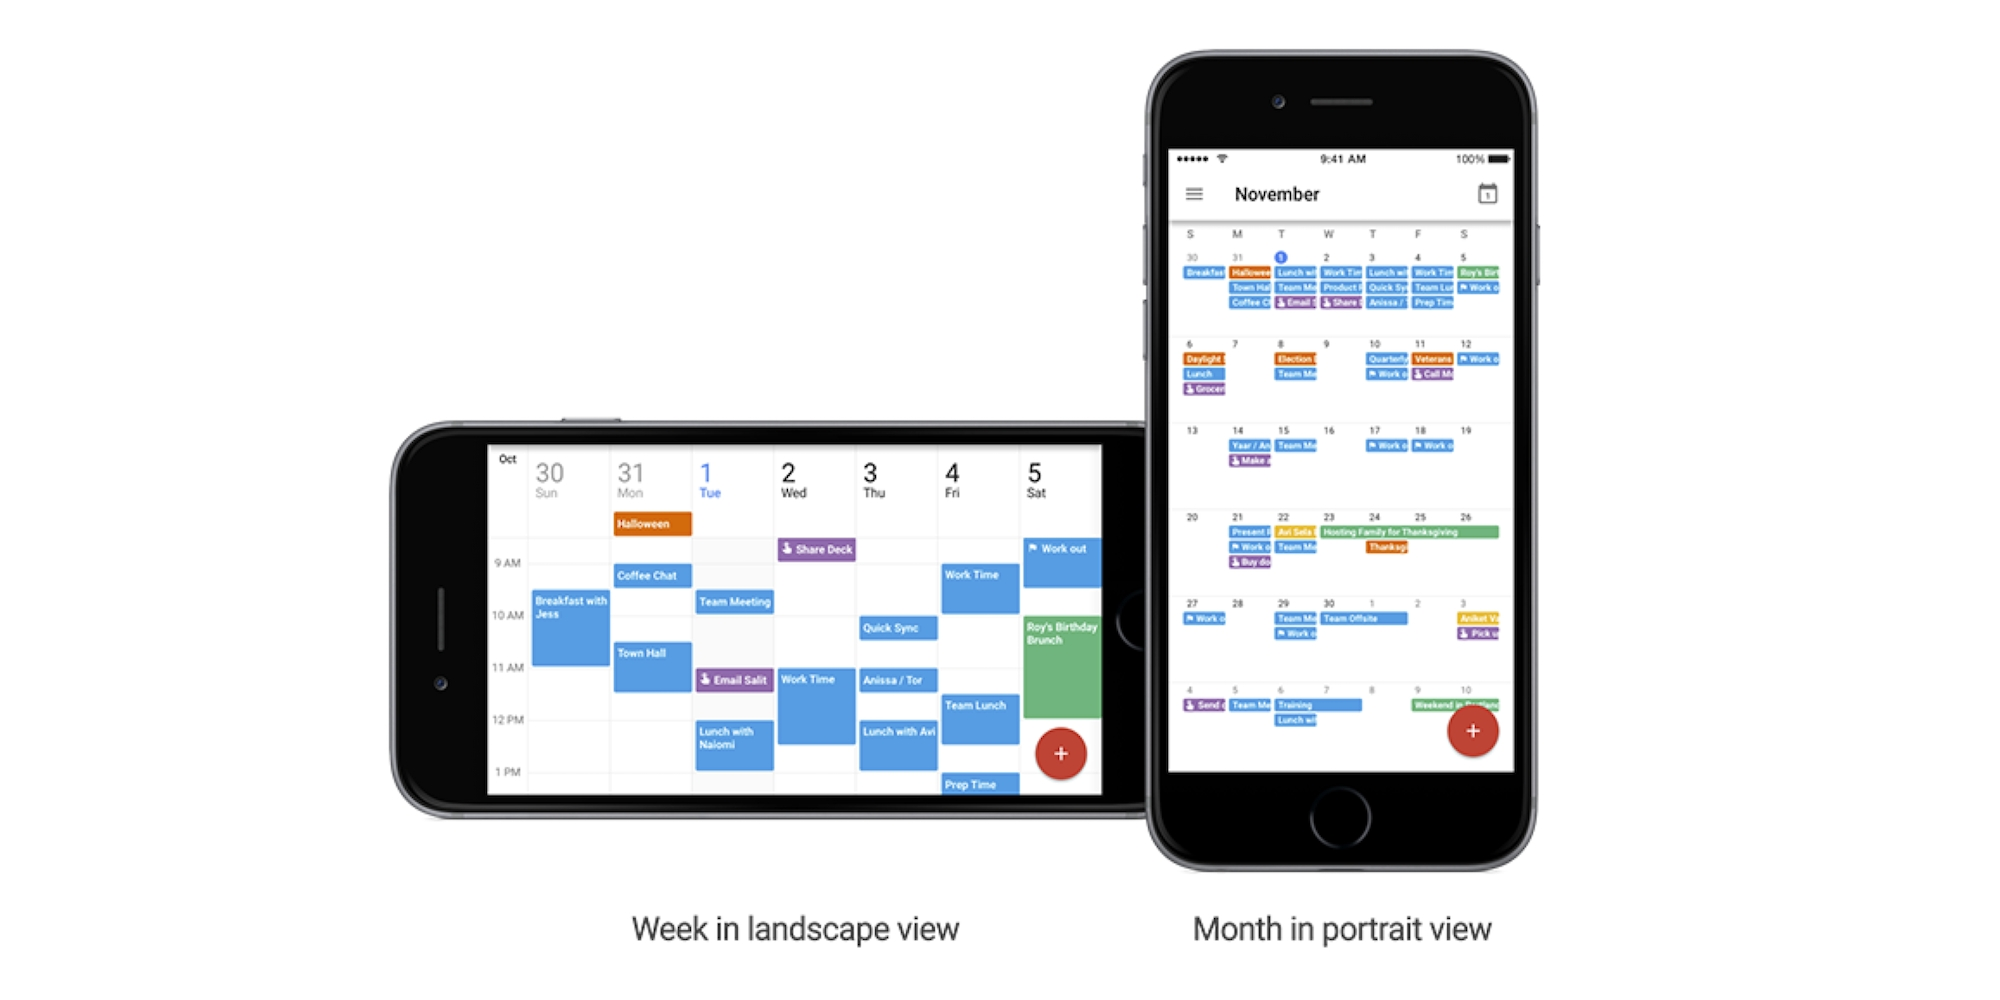 Google Calendar For Iphone Adds Spotlight Search, Month View